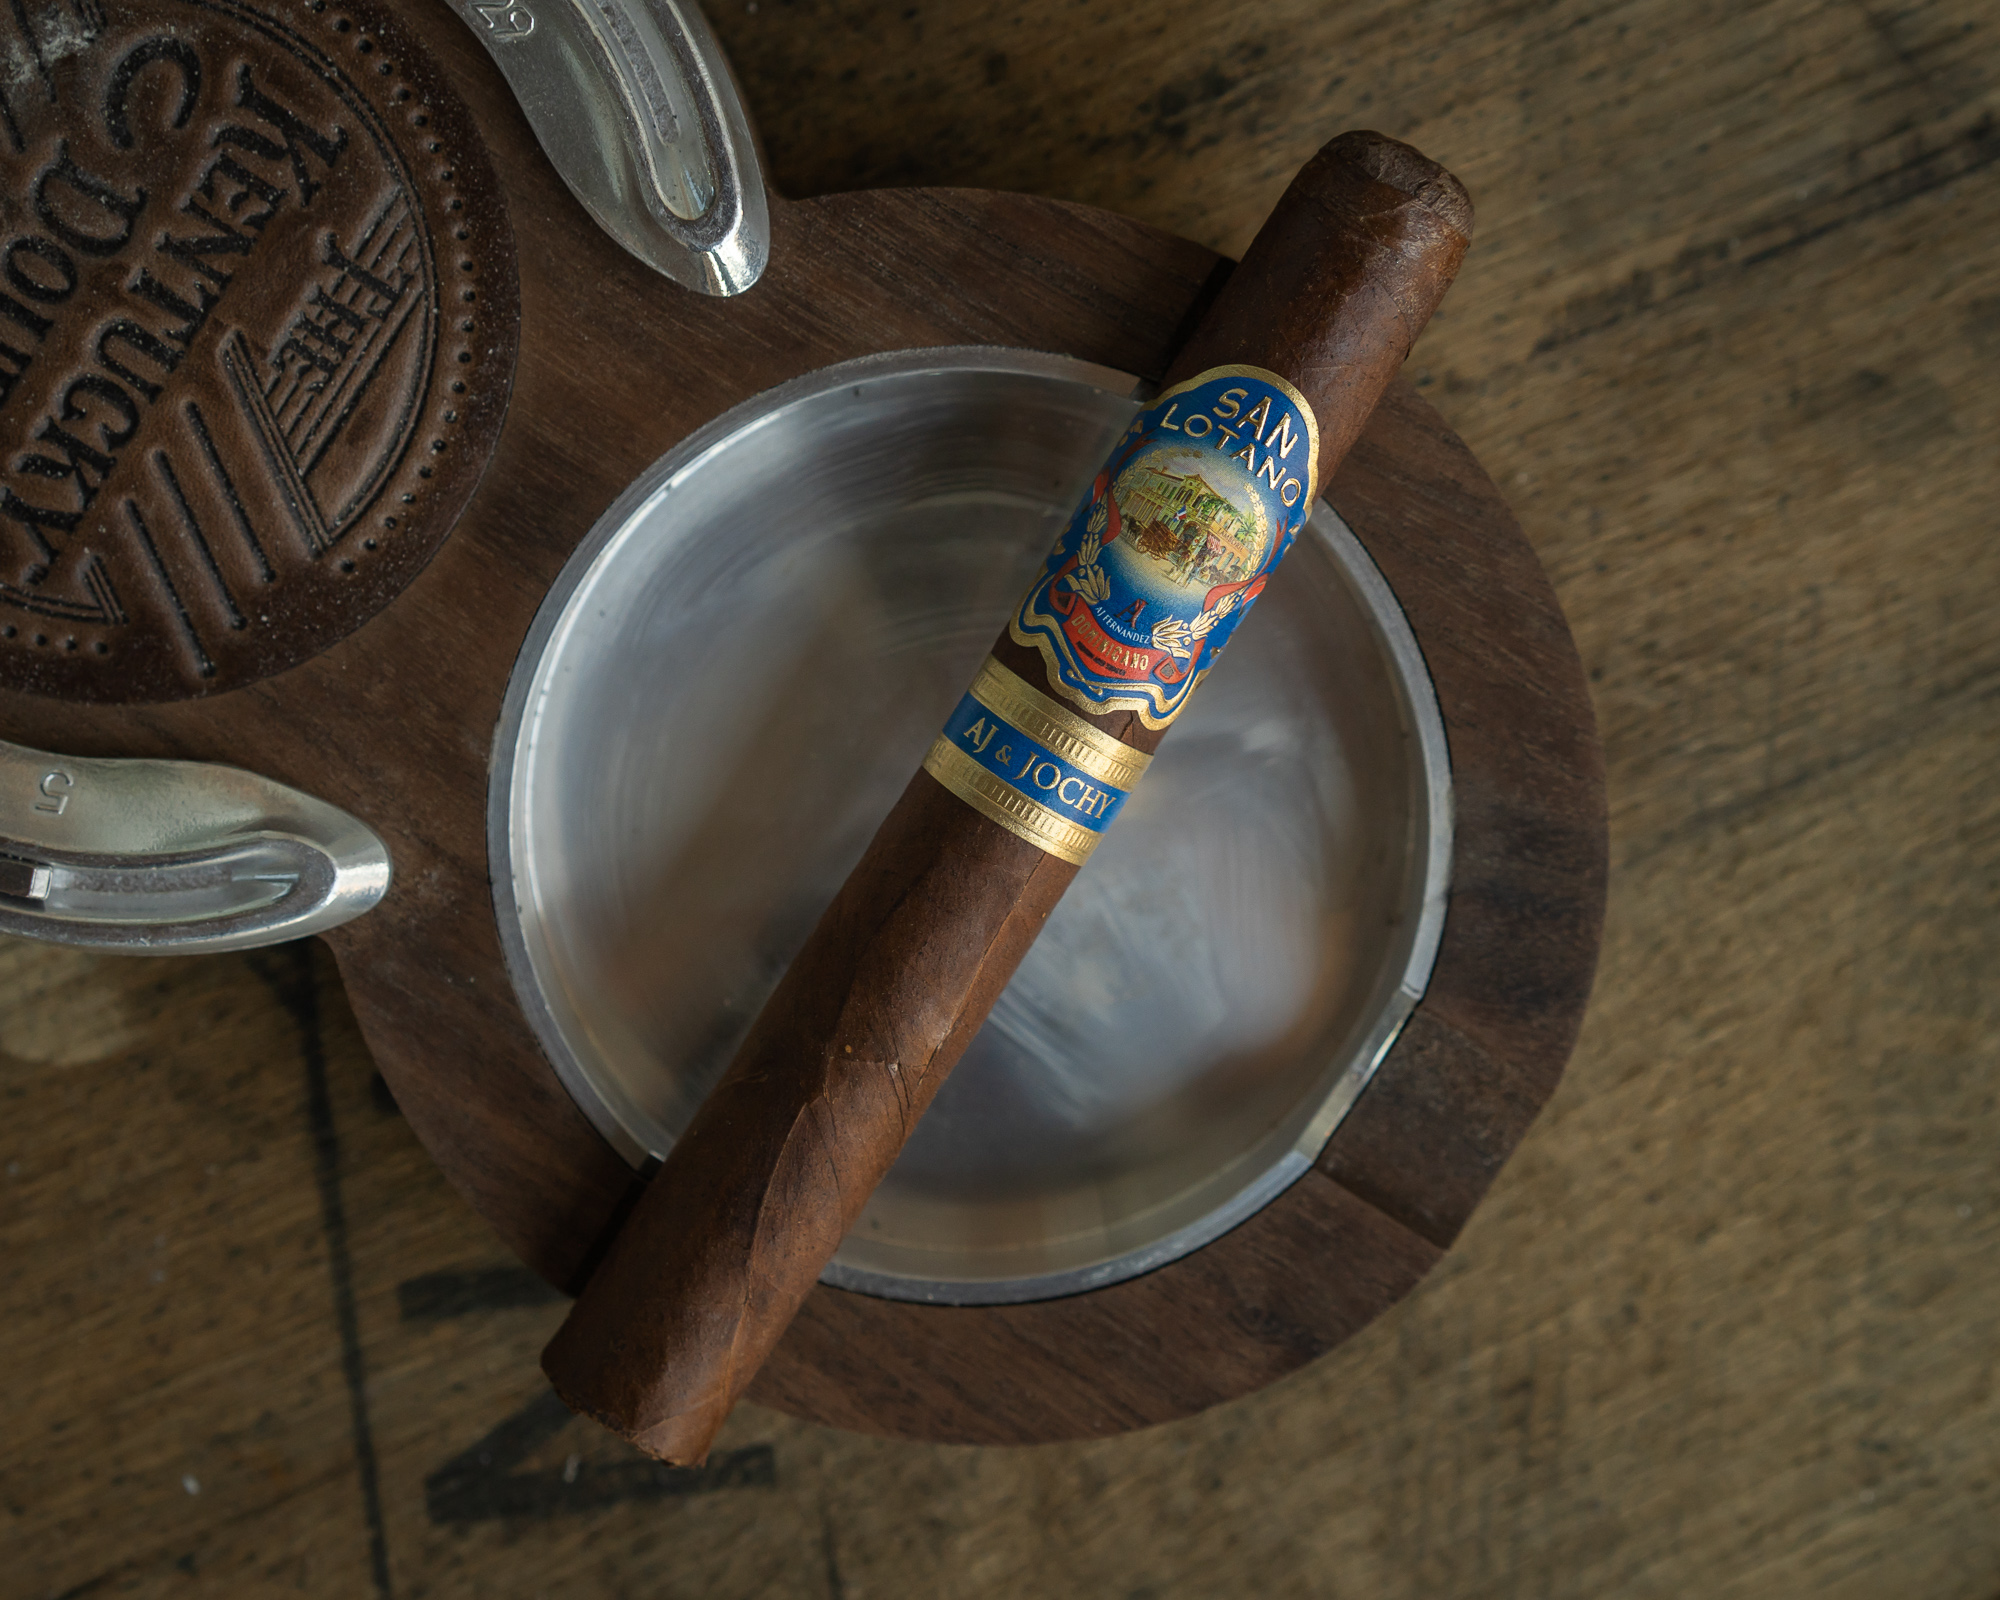 San Lotano Dominicano AJ & Joche Review